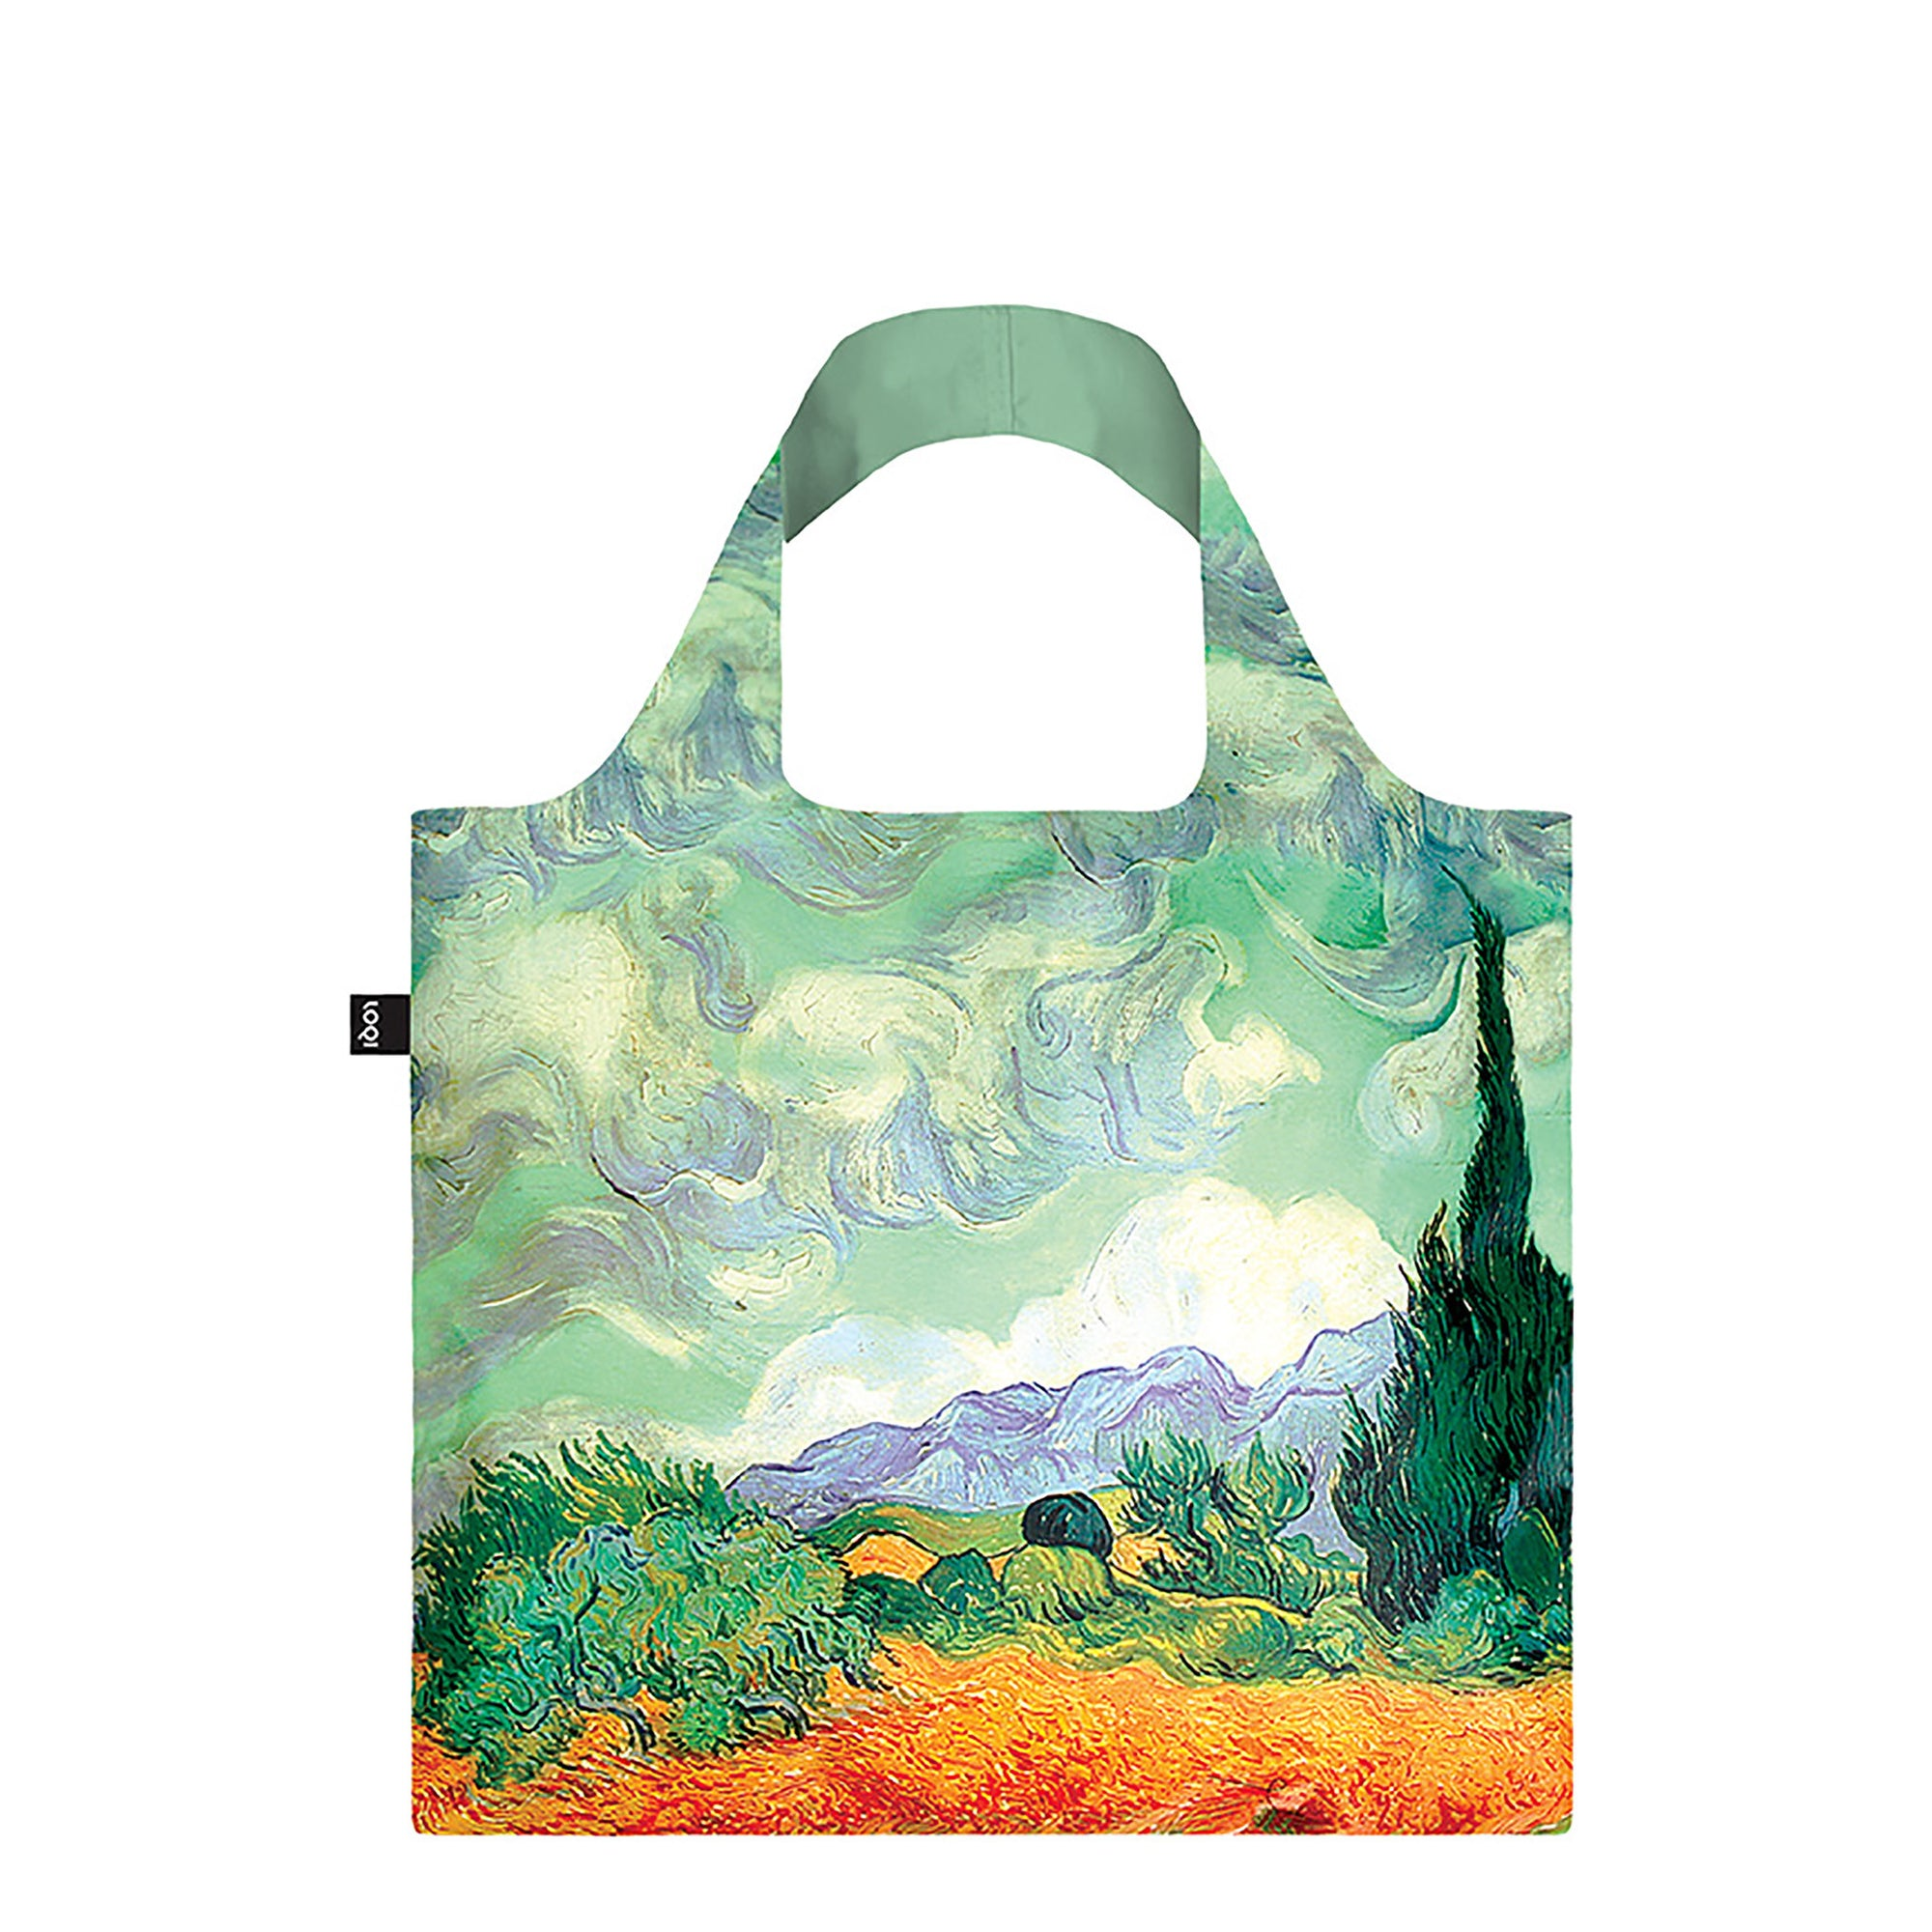 Tote Bag - Van Gogh's <i> Wheat Field with Cypresses </i>